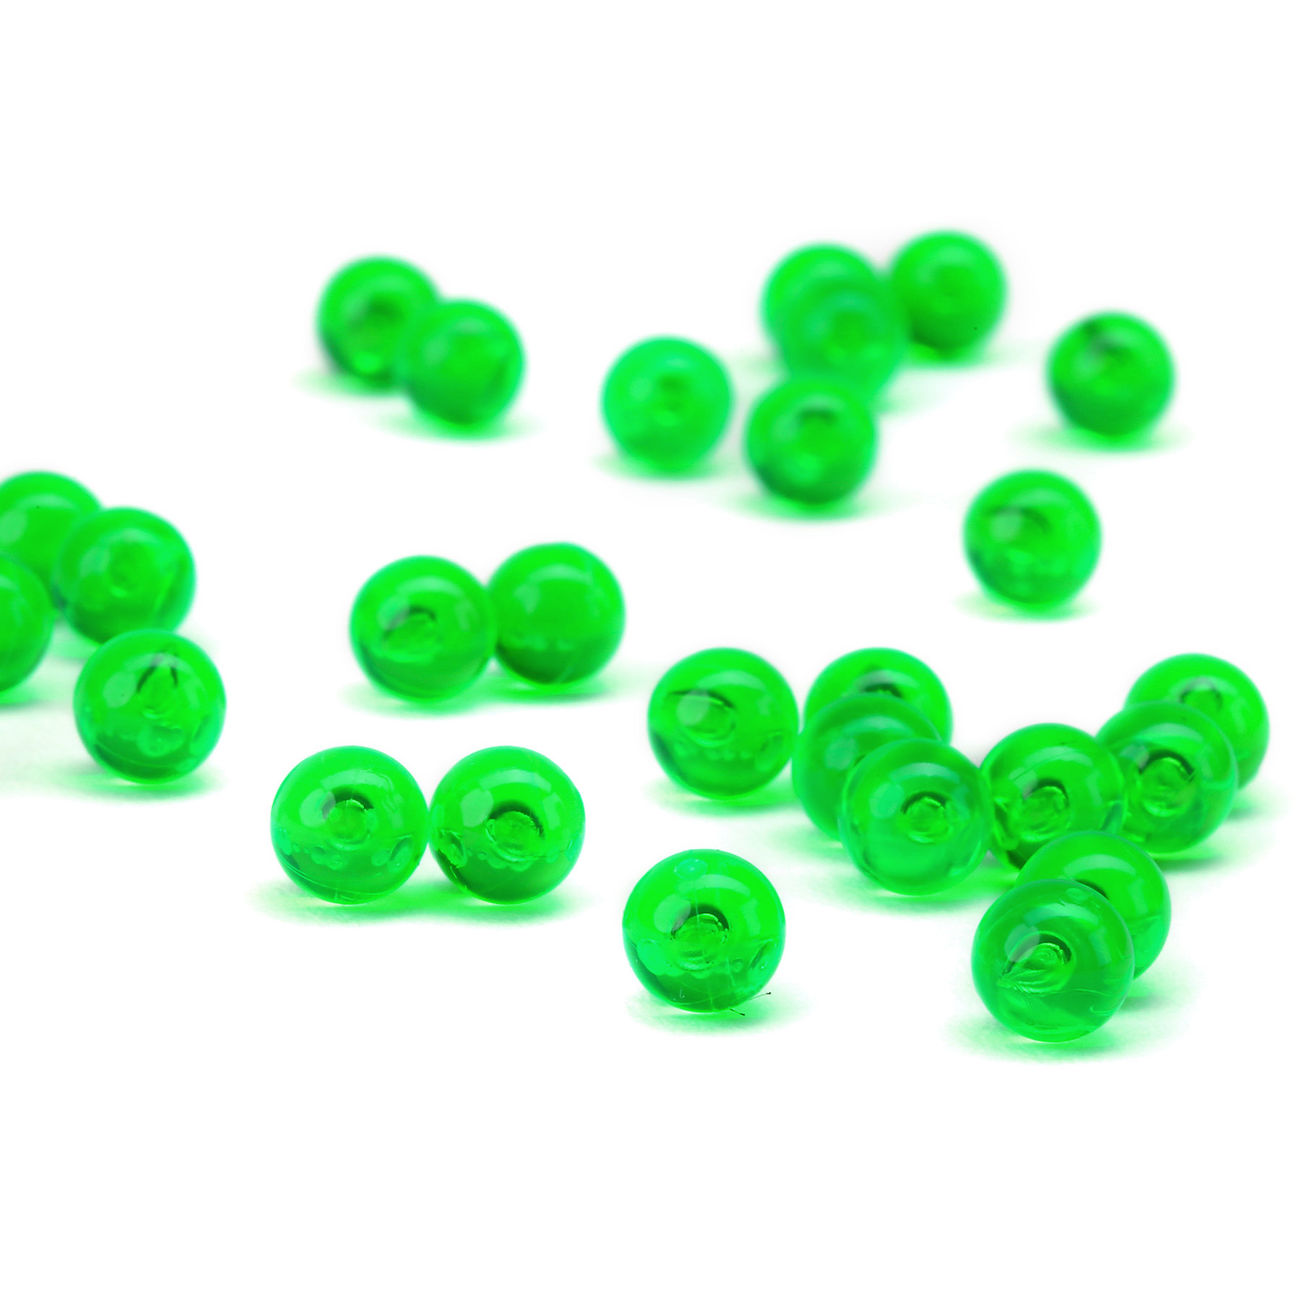 Cybergun Colt Competition Grade BBs 0,12g 10.000er Container Clear Green 2